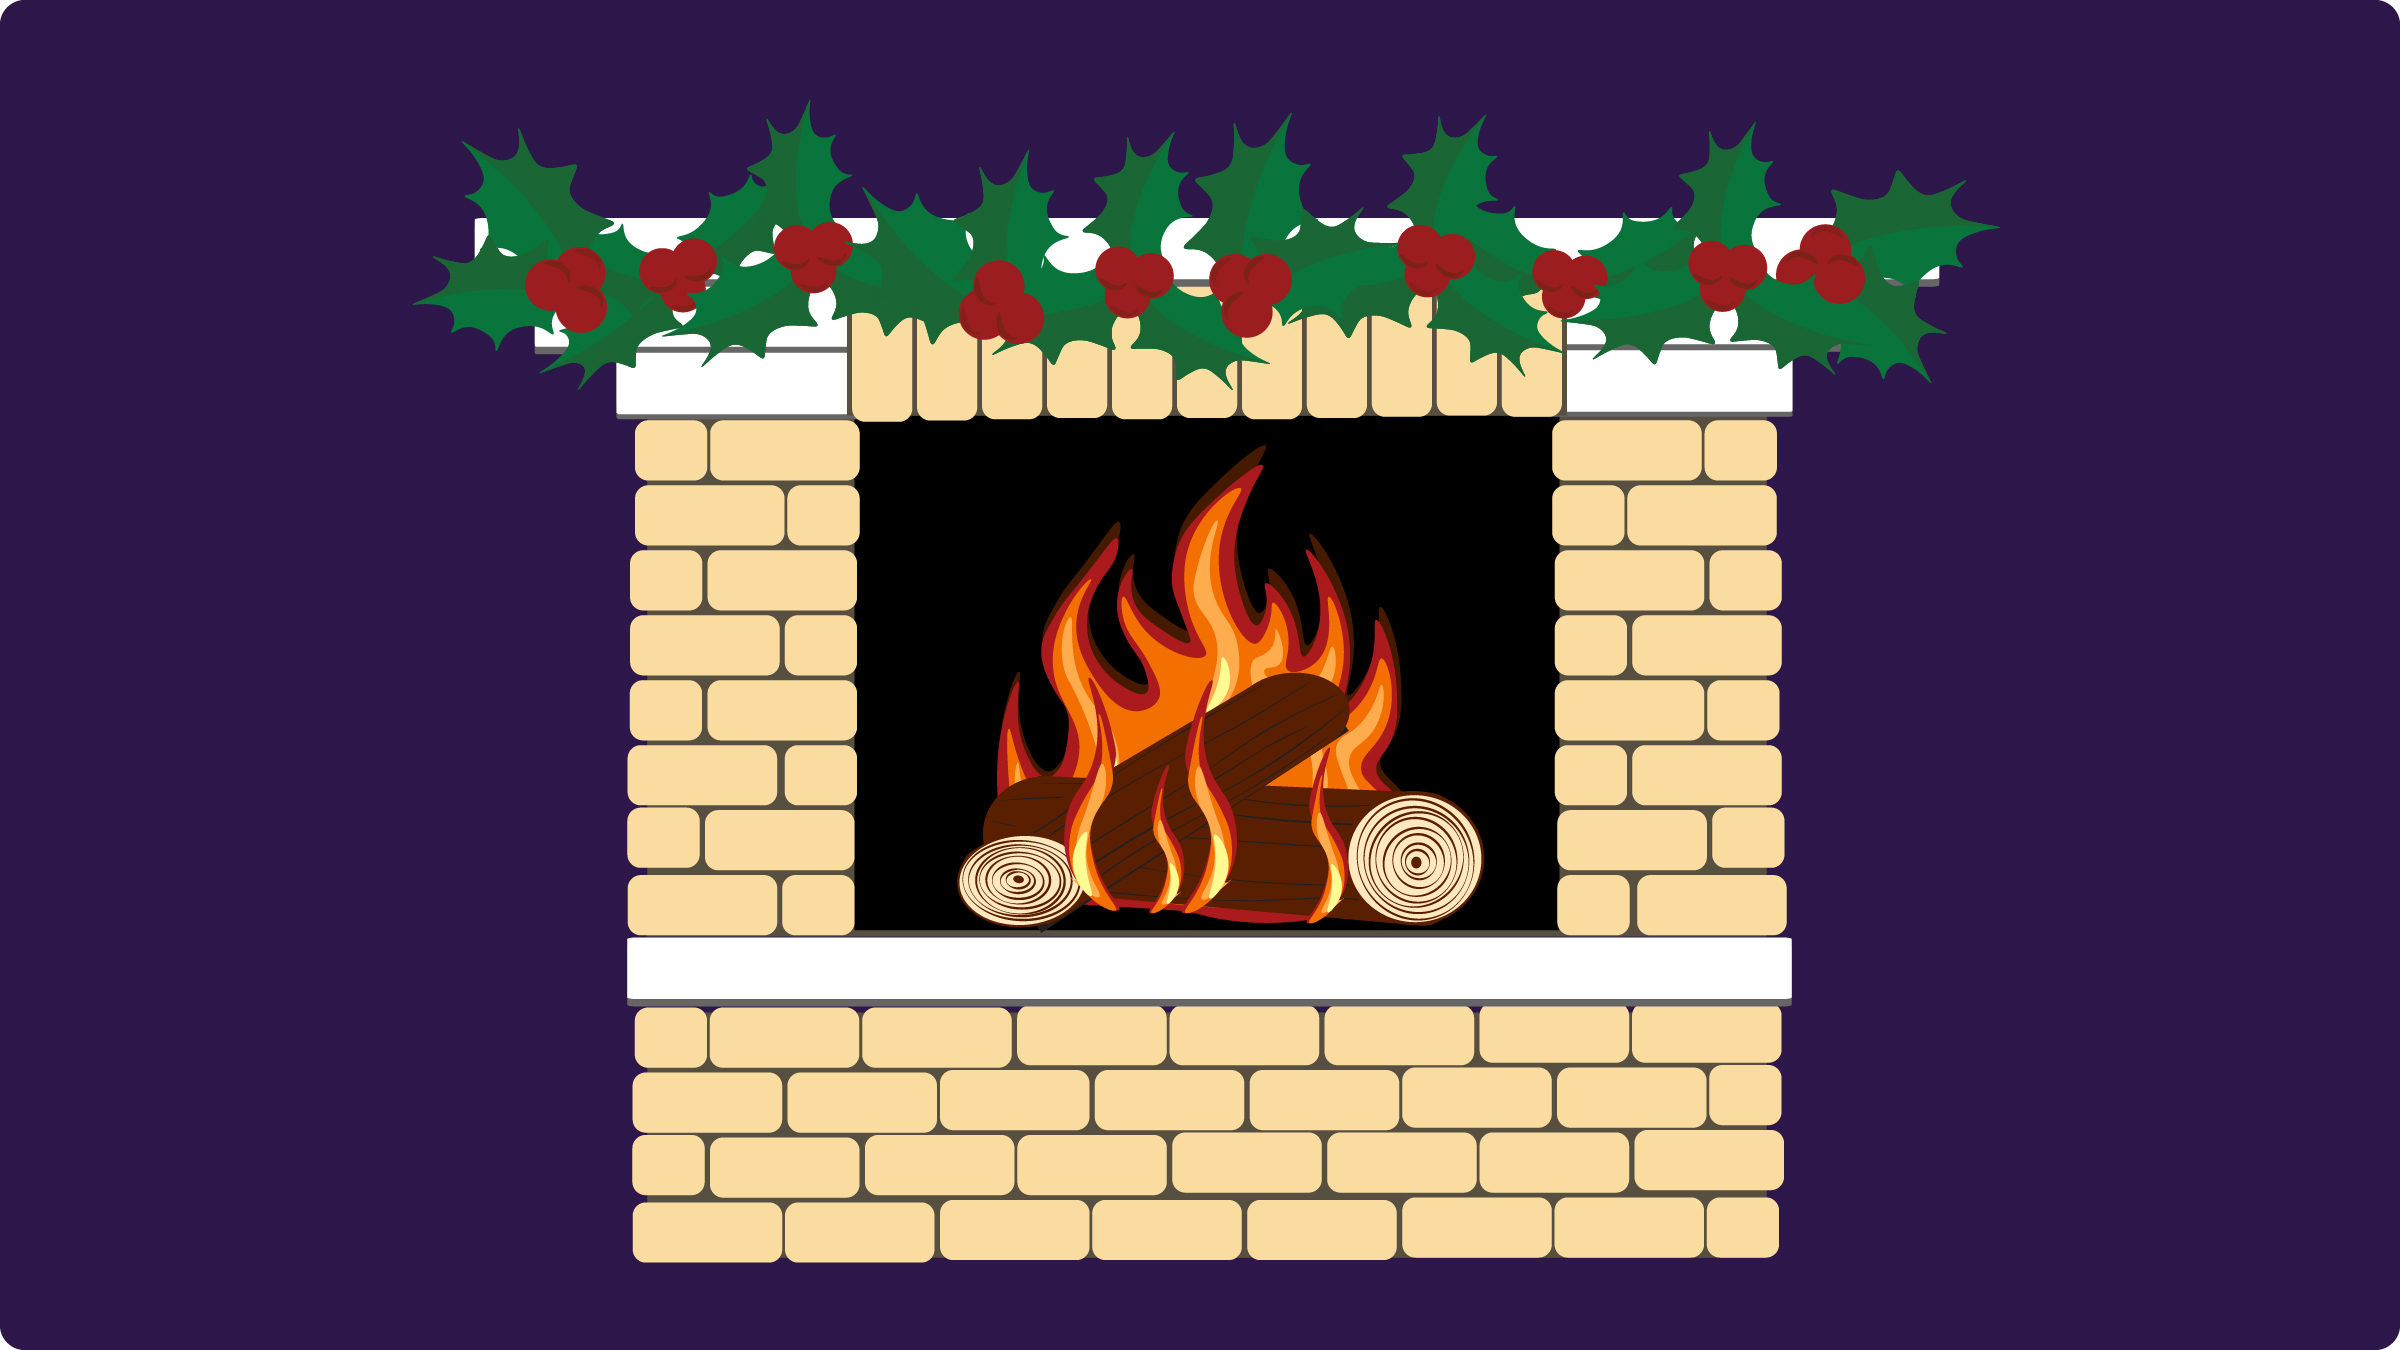 A vector image of a fireplace with a roaring fire and holly on the mantle.